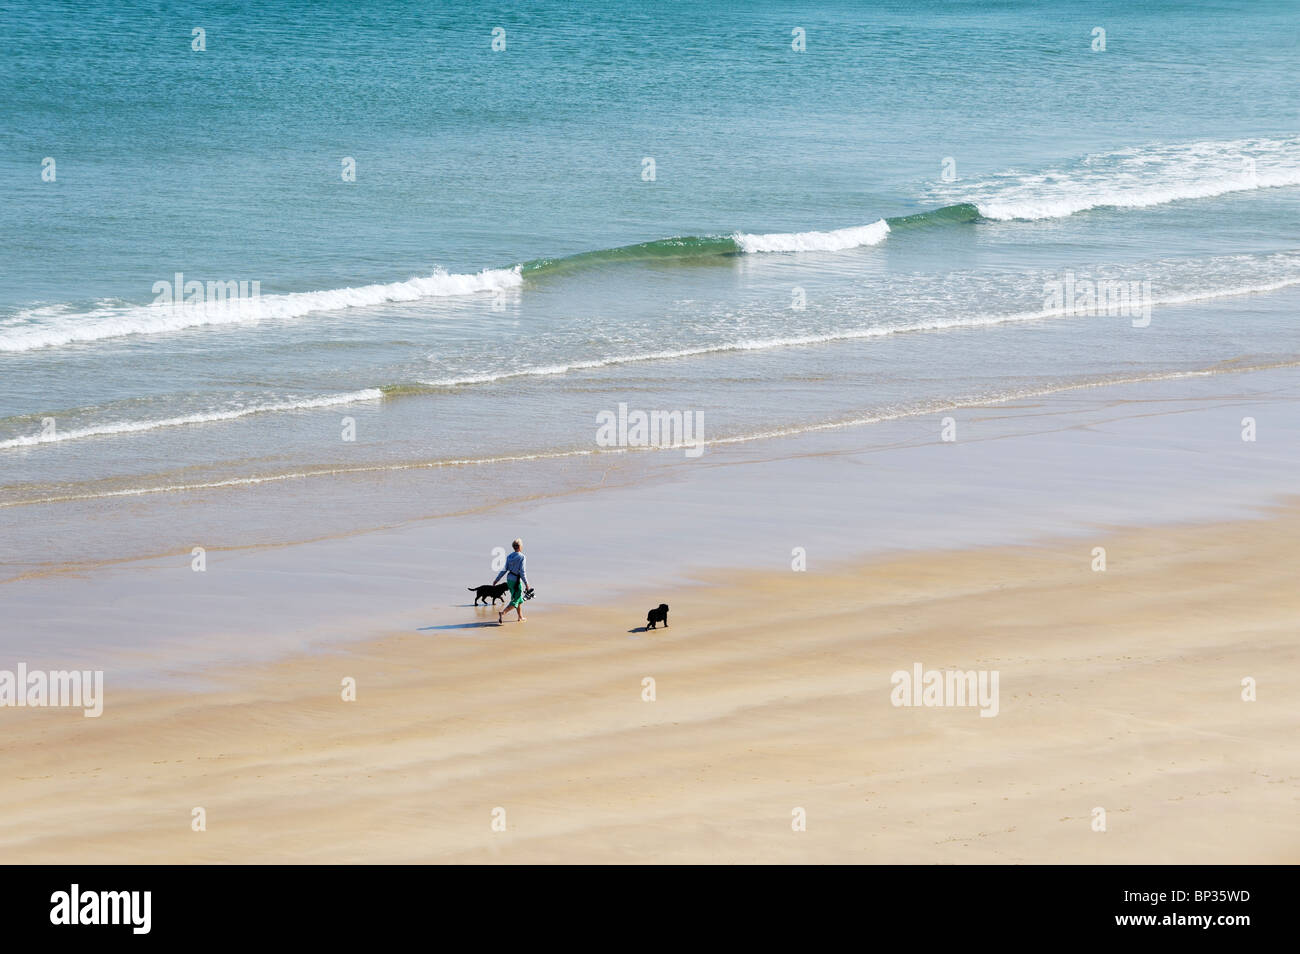 Woman walking dogs alone on deserted beach shore at the White Rocks between Portrush and Bushmills, Northern Ireland - Stock Image